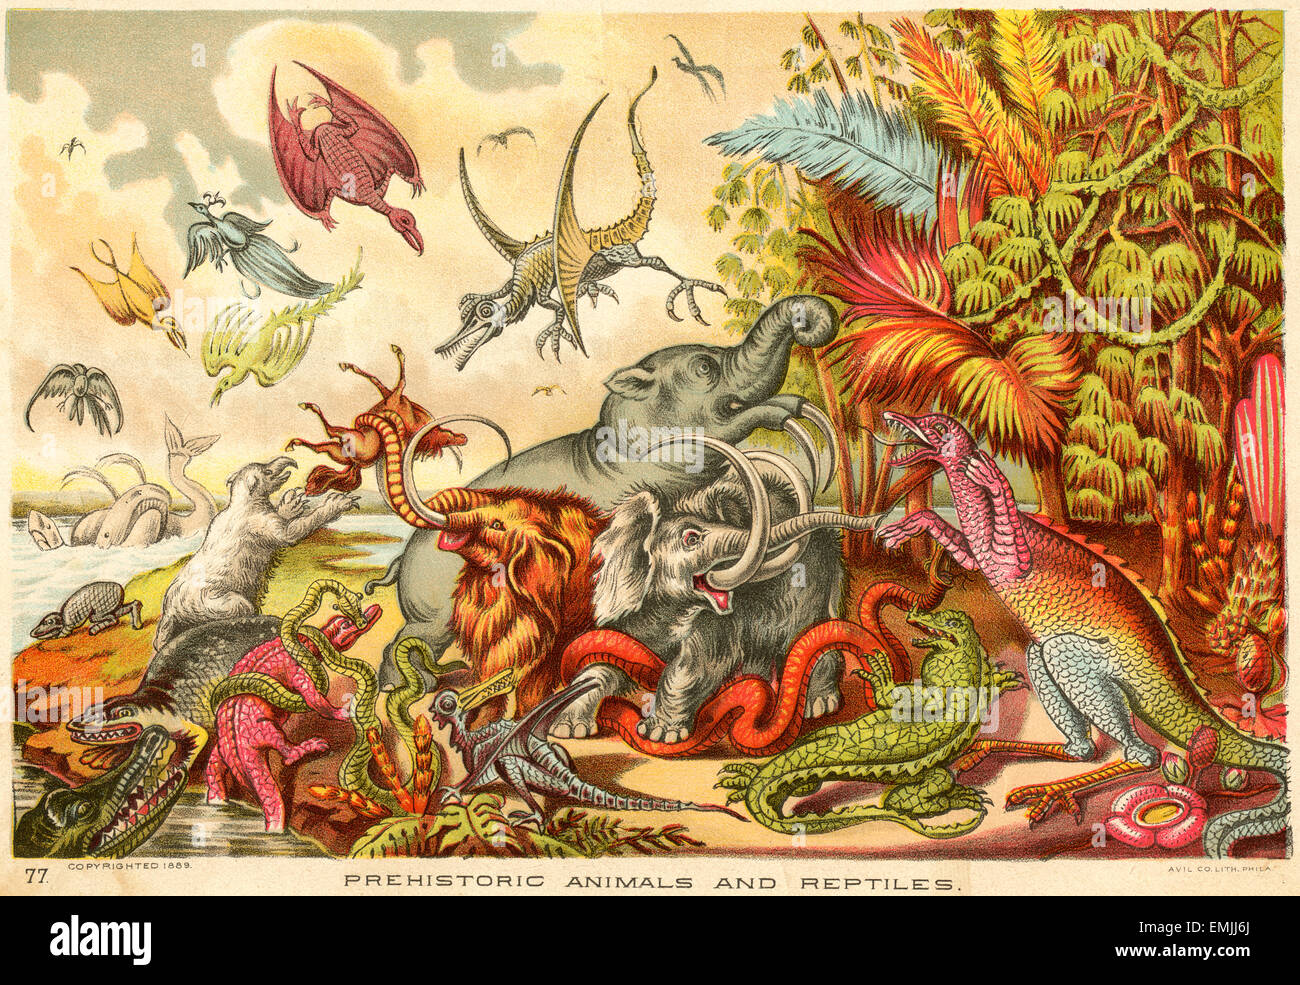 Prehistoric Animals and Reptiles, Avil Co. Lith. Phila., 1889 - Stock Image